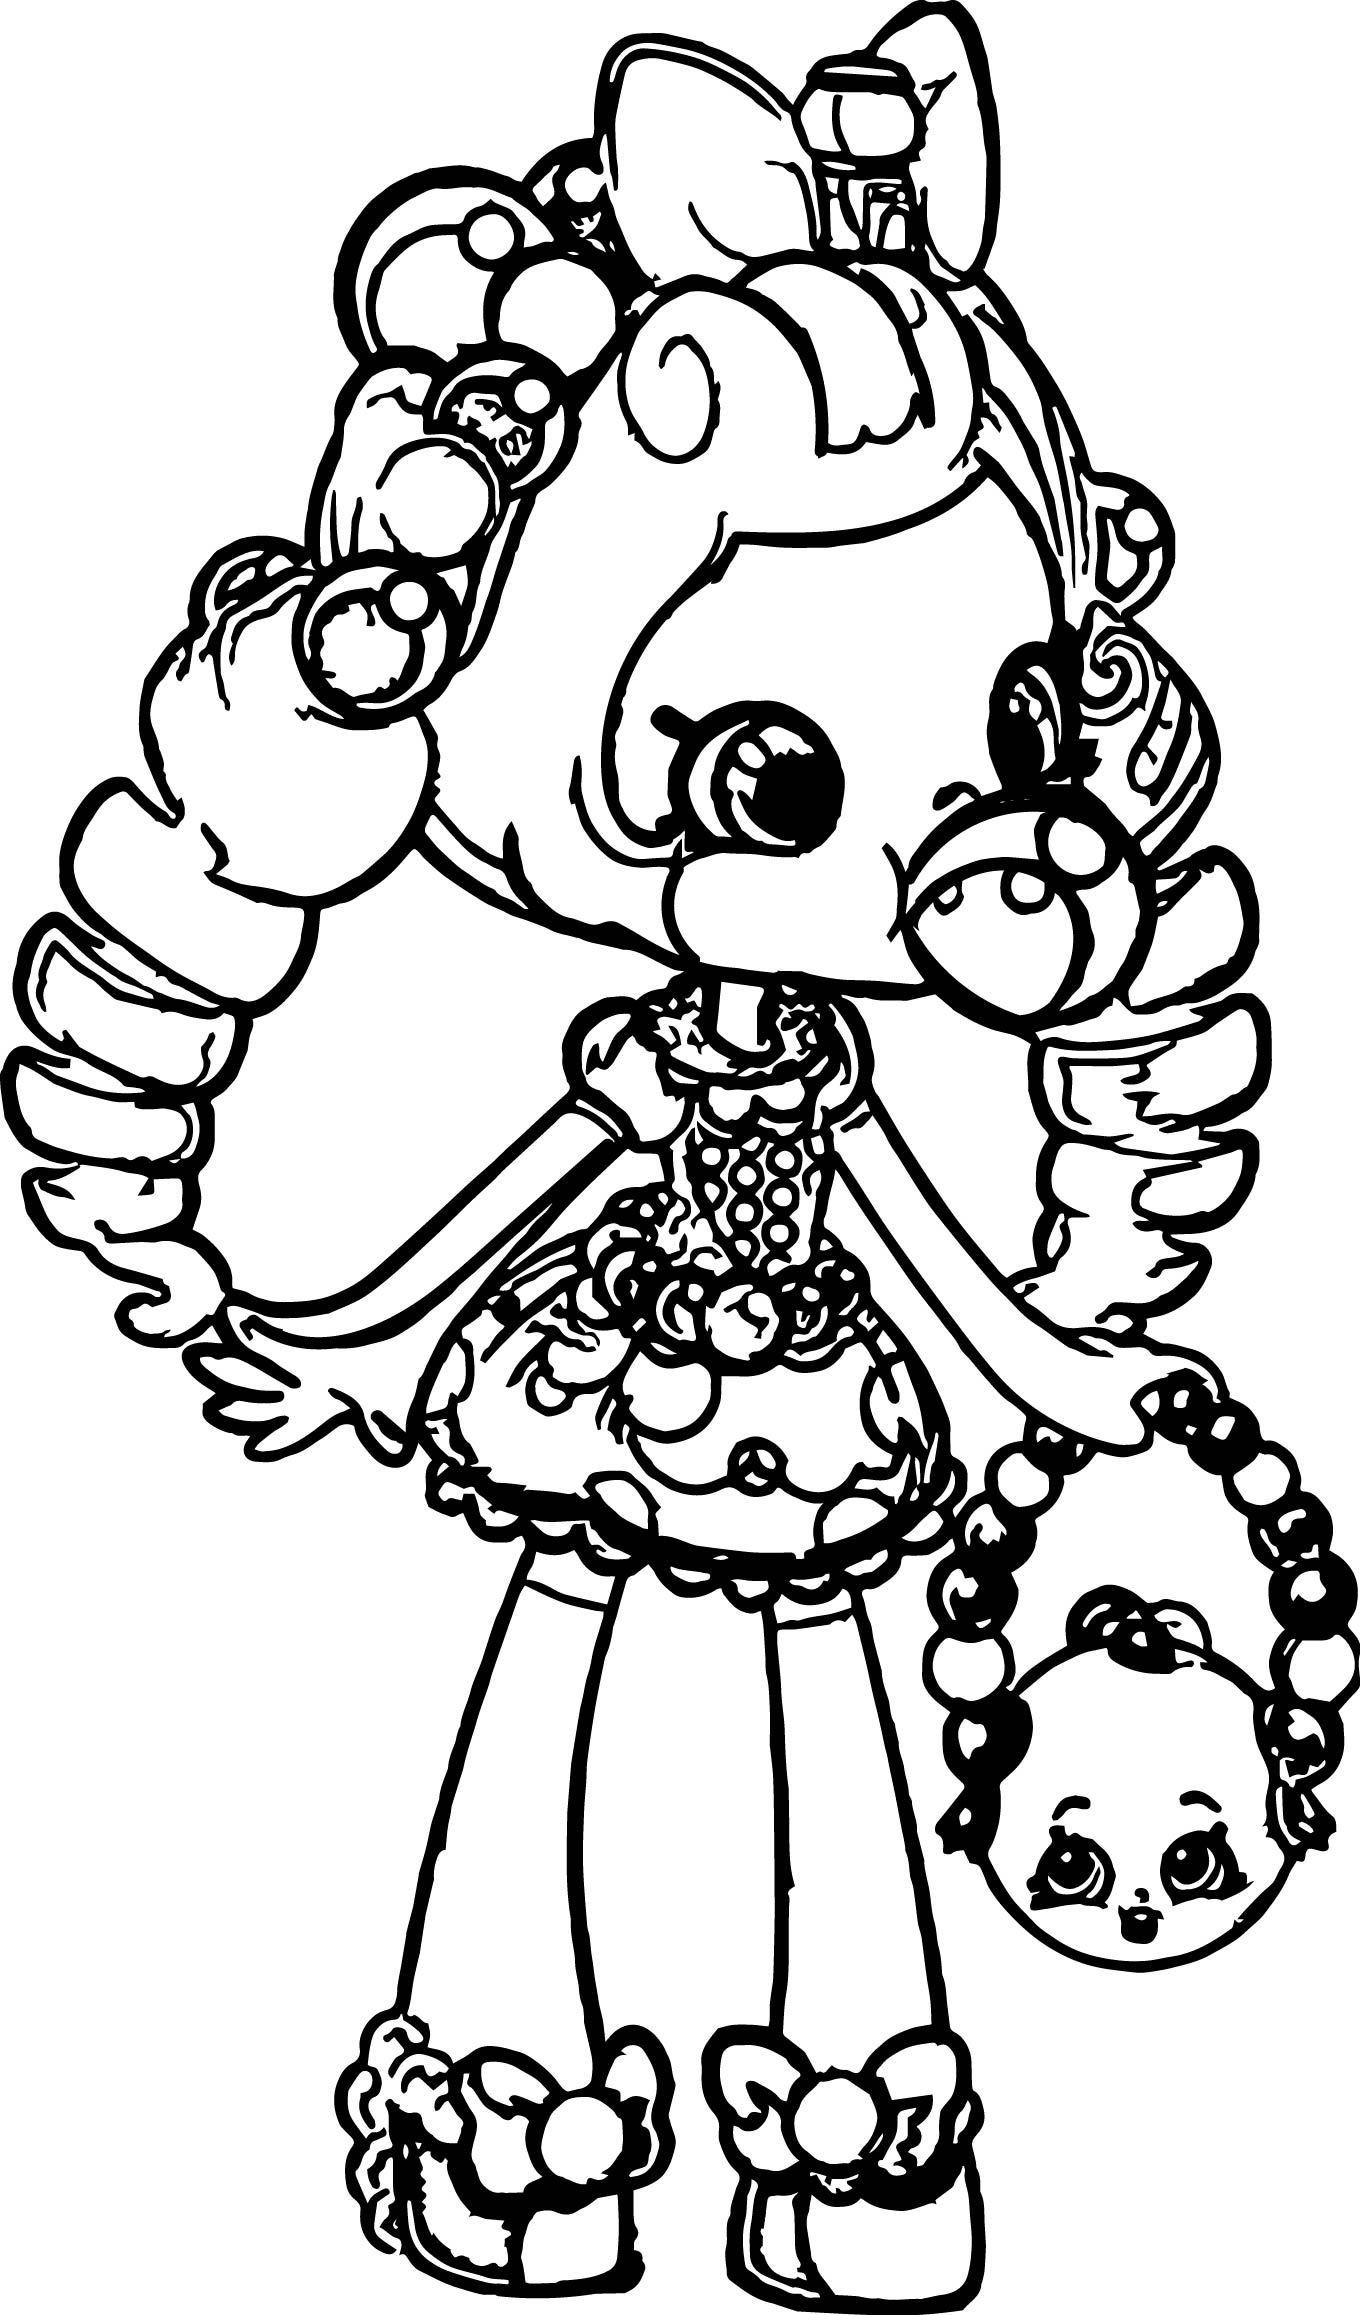 Shopkins Balloon Girl Coloring Page | Wecoloringpage